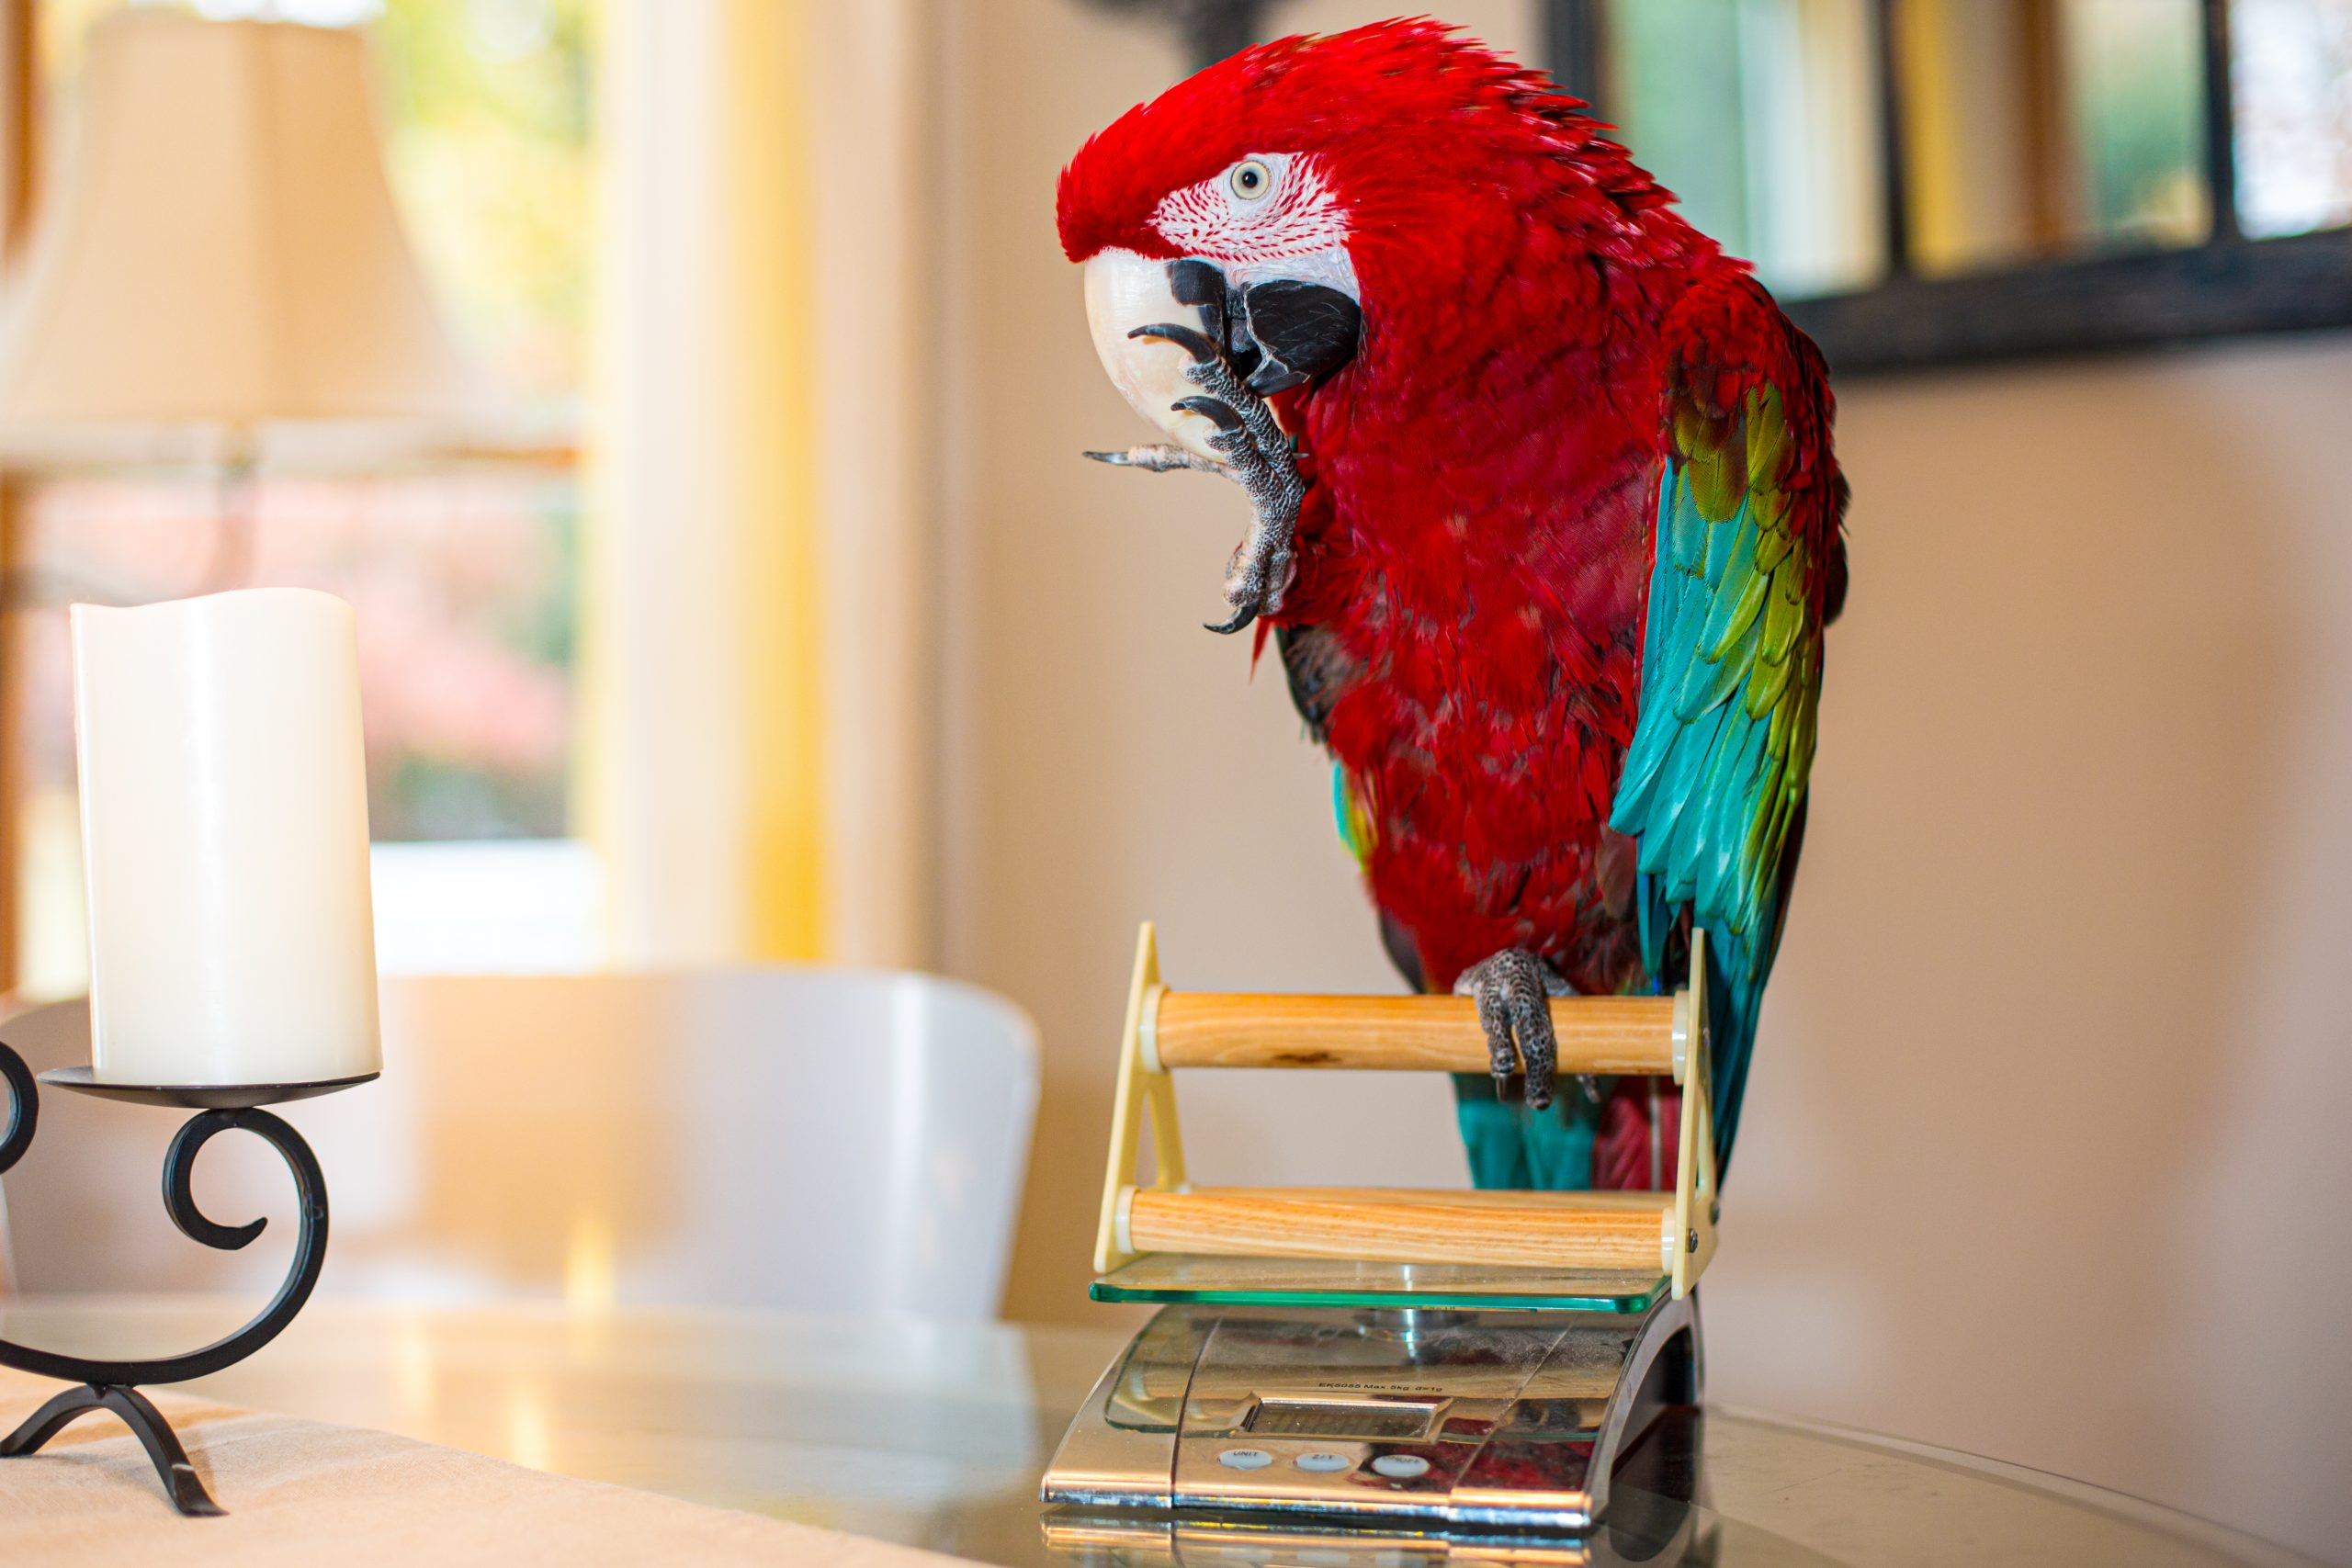 Pet green-winged macaw parrot getting her weight checked on gram scale on table